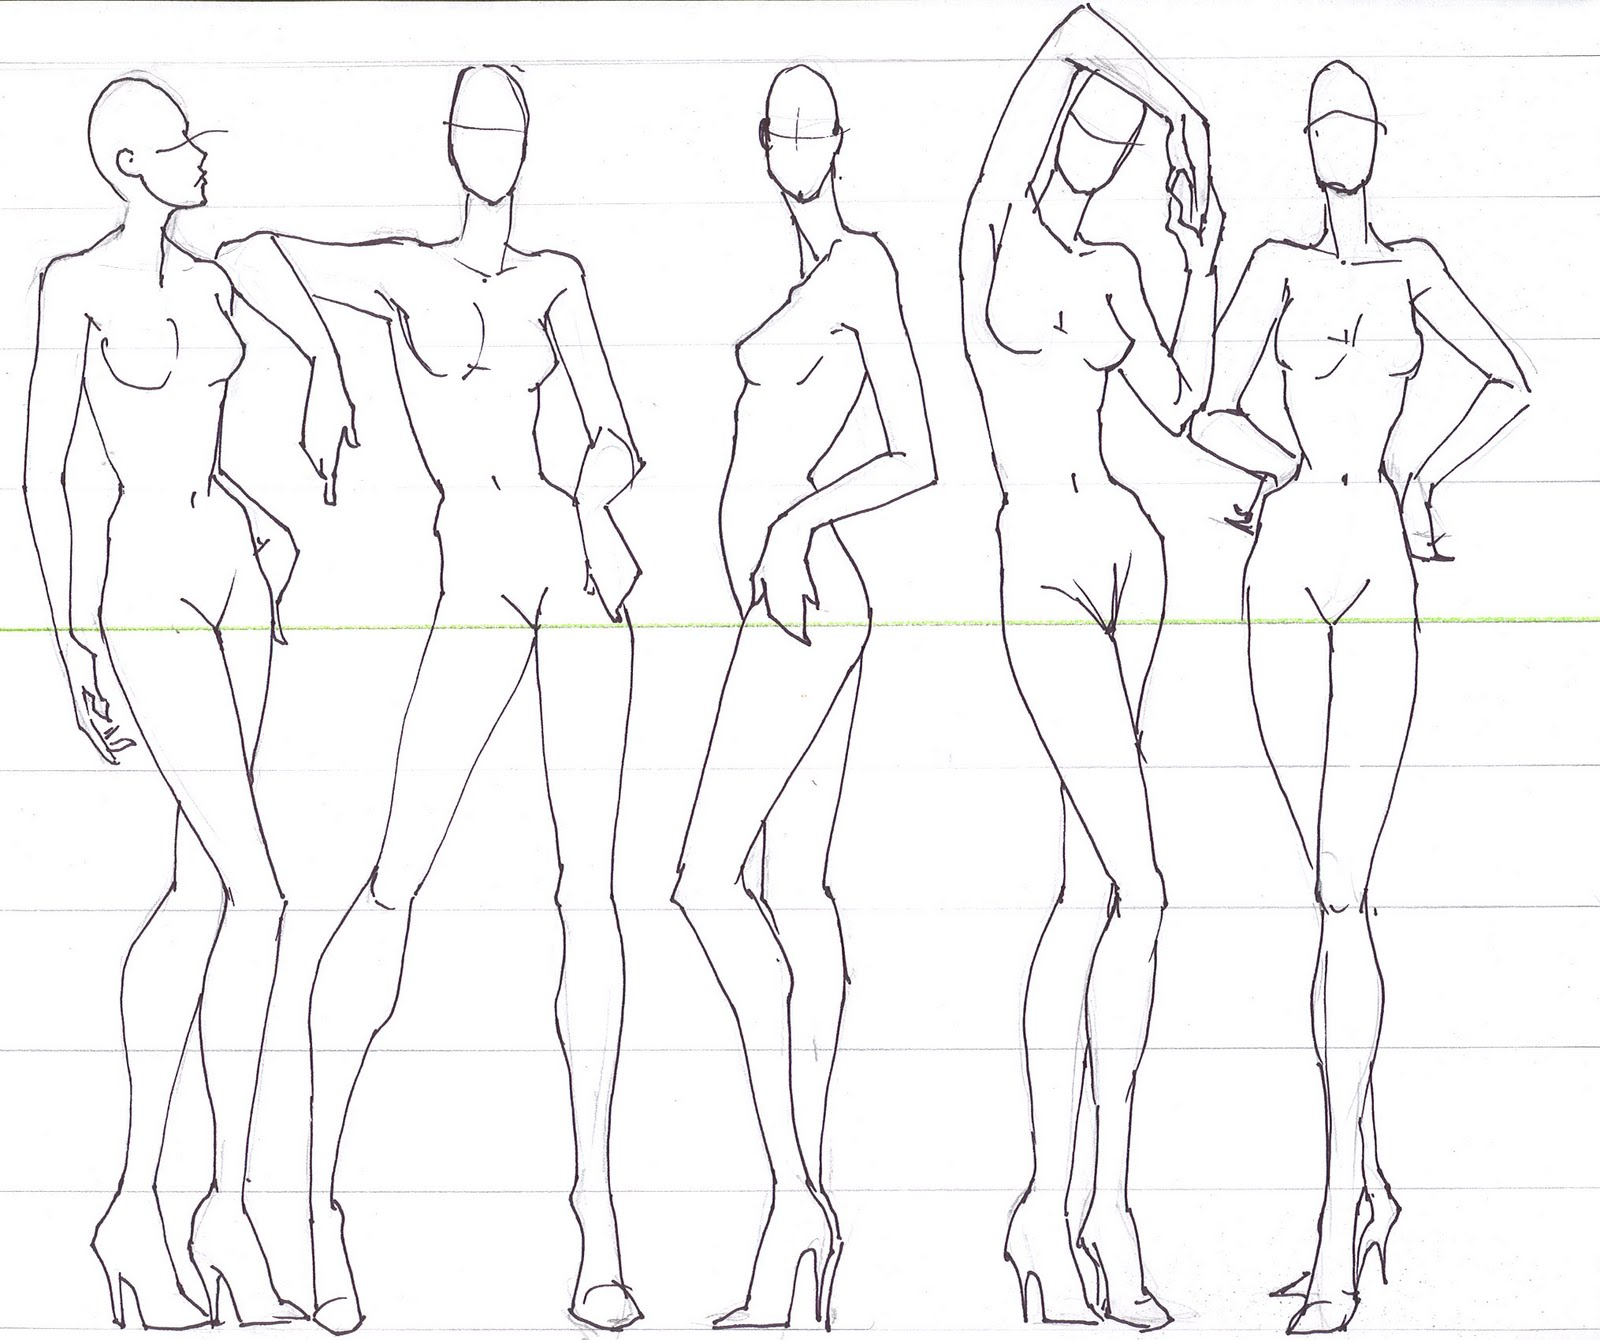 Plus Size Figure Drawing at GetDrawings com | Free for